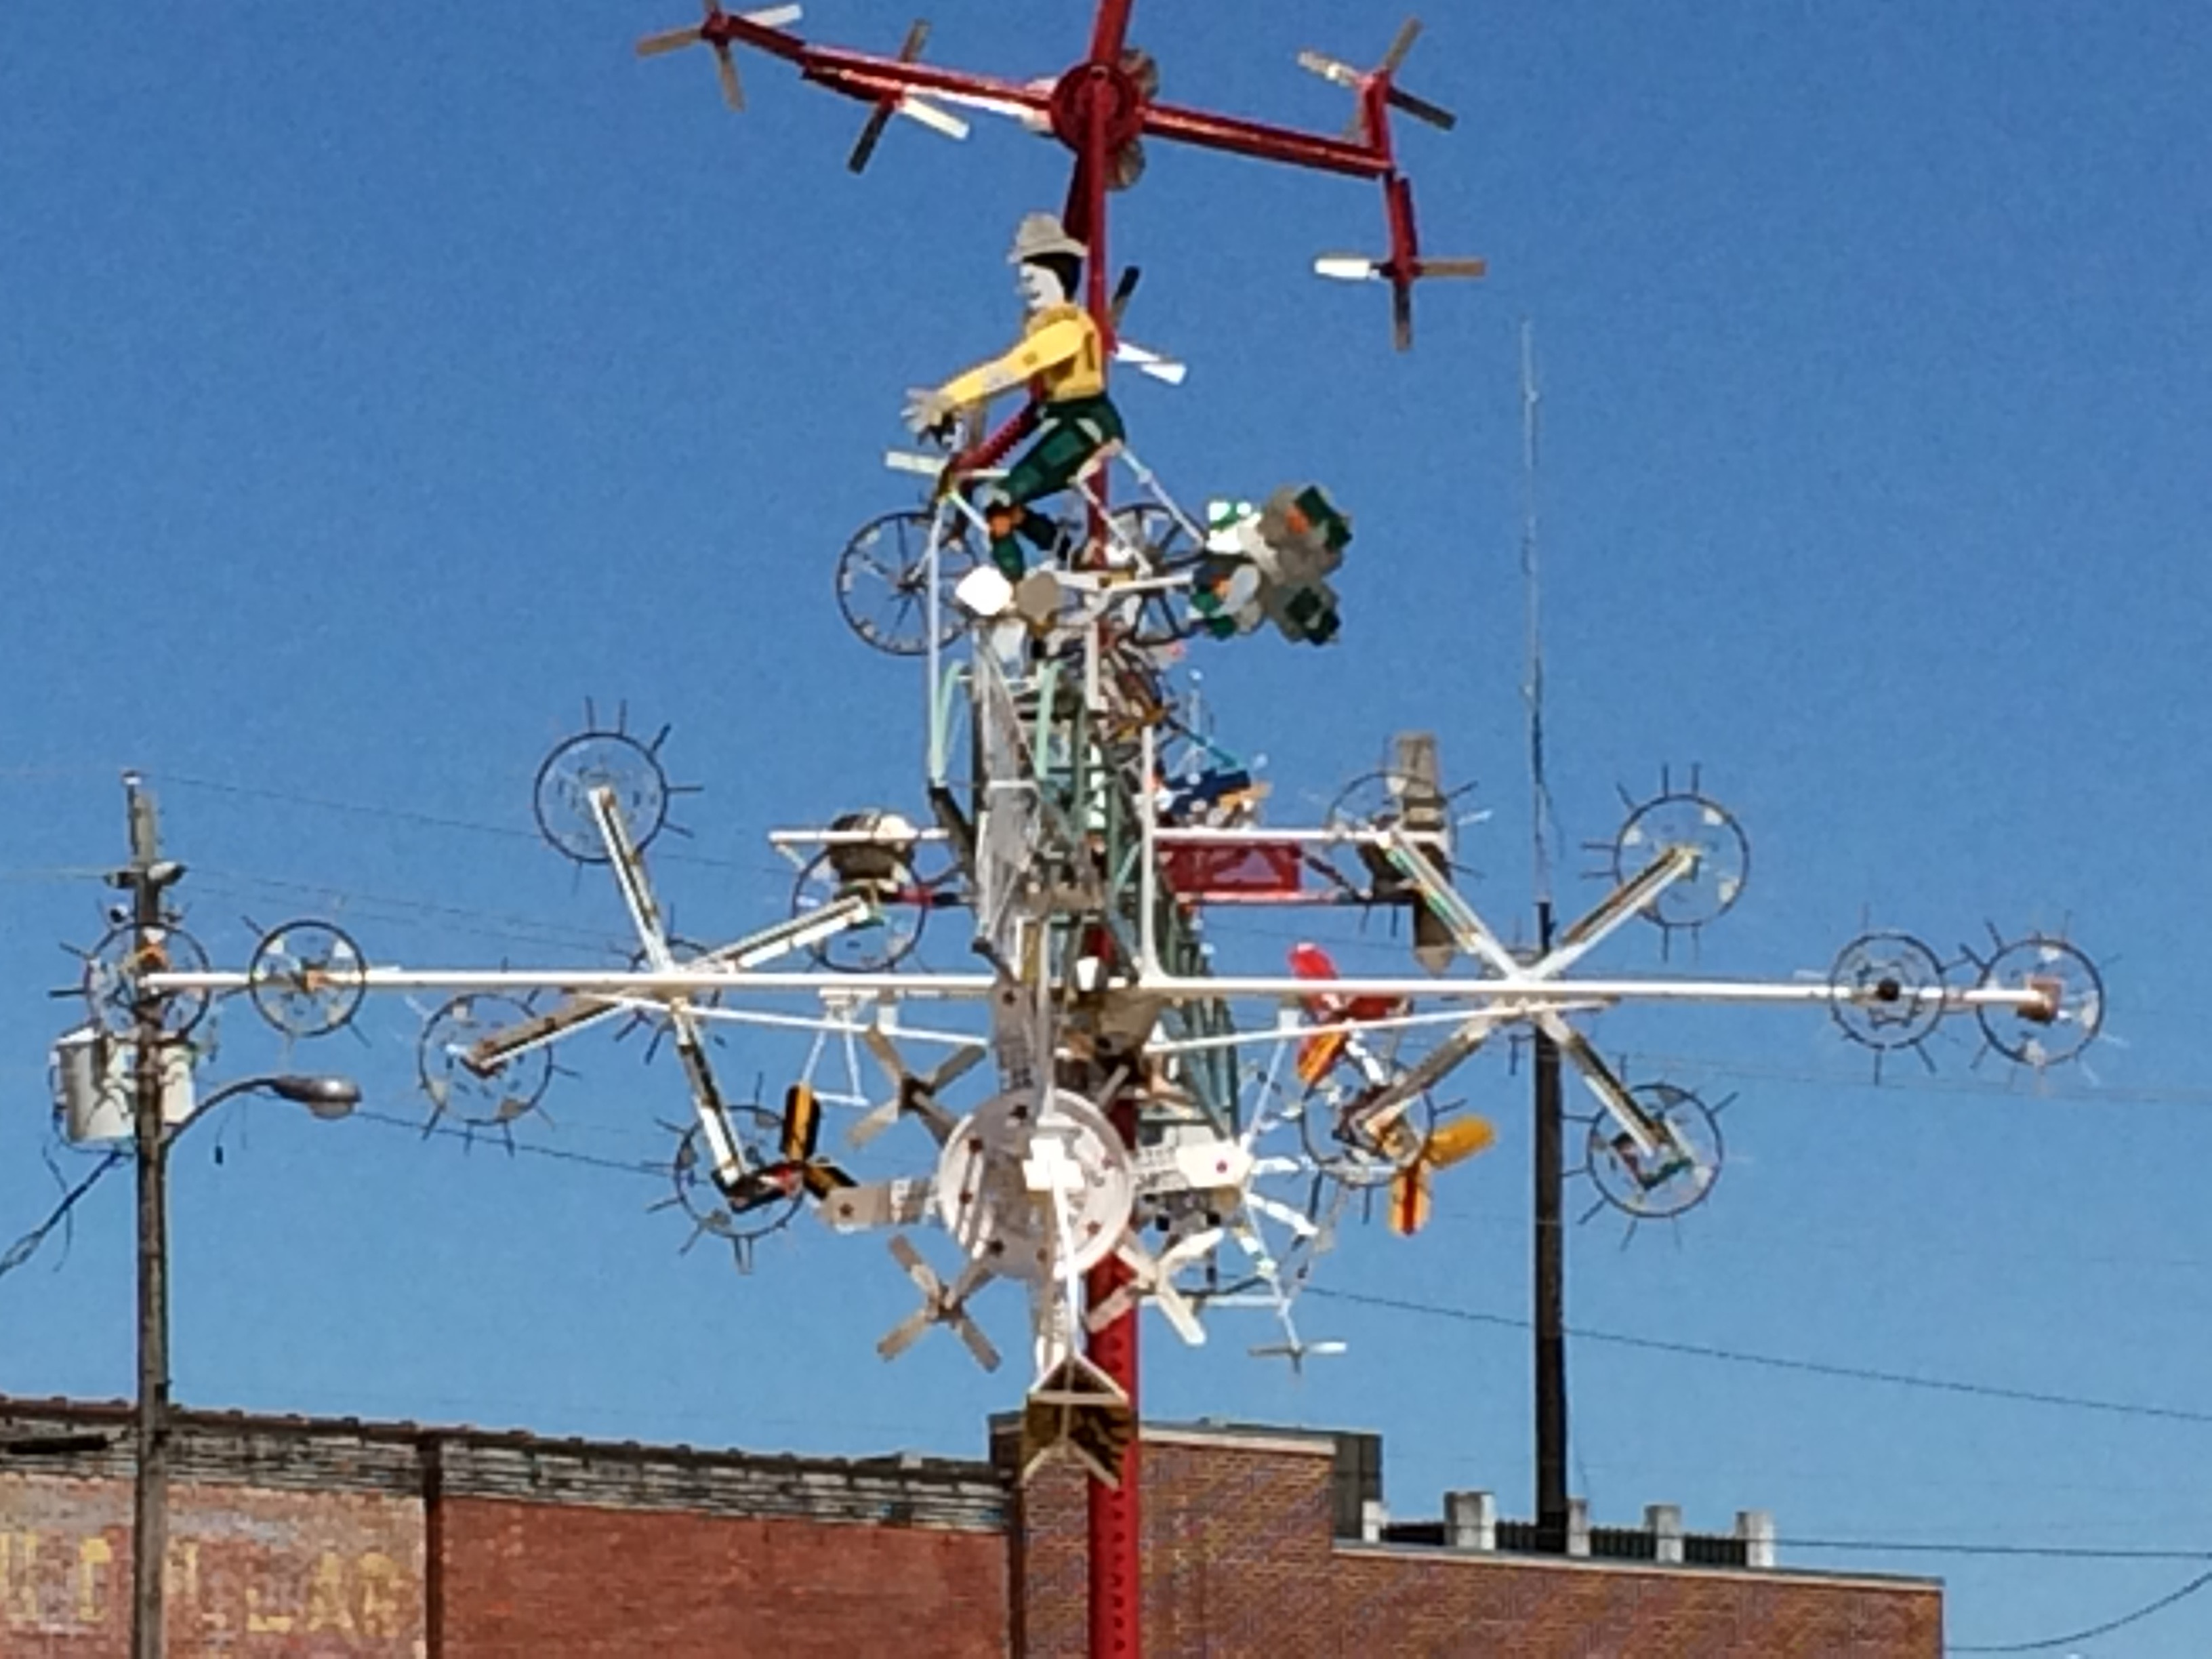 Caption: Whirligig, Credit: Photo by Tonya Fitzpatrick